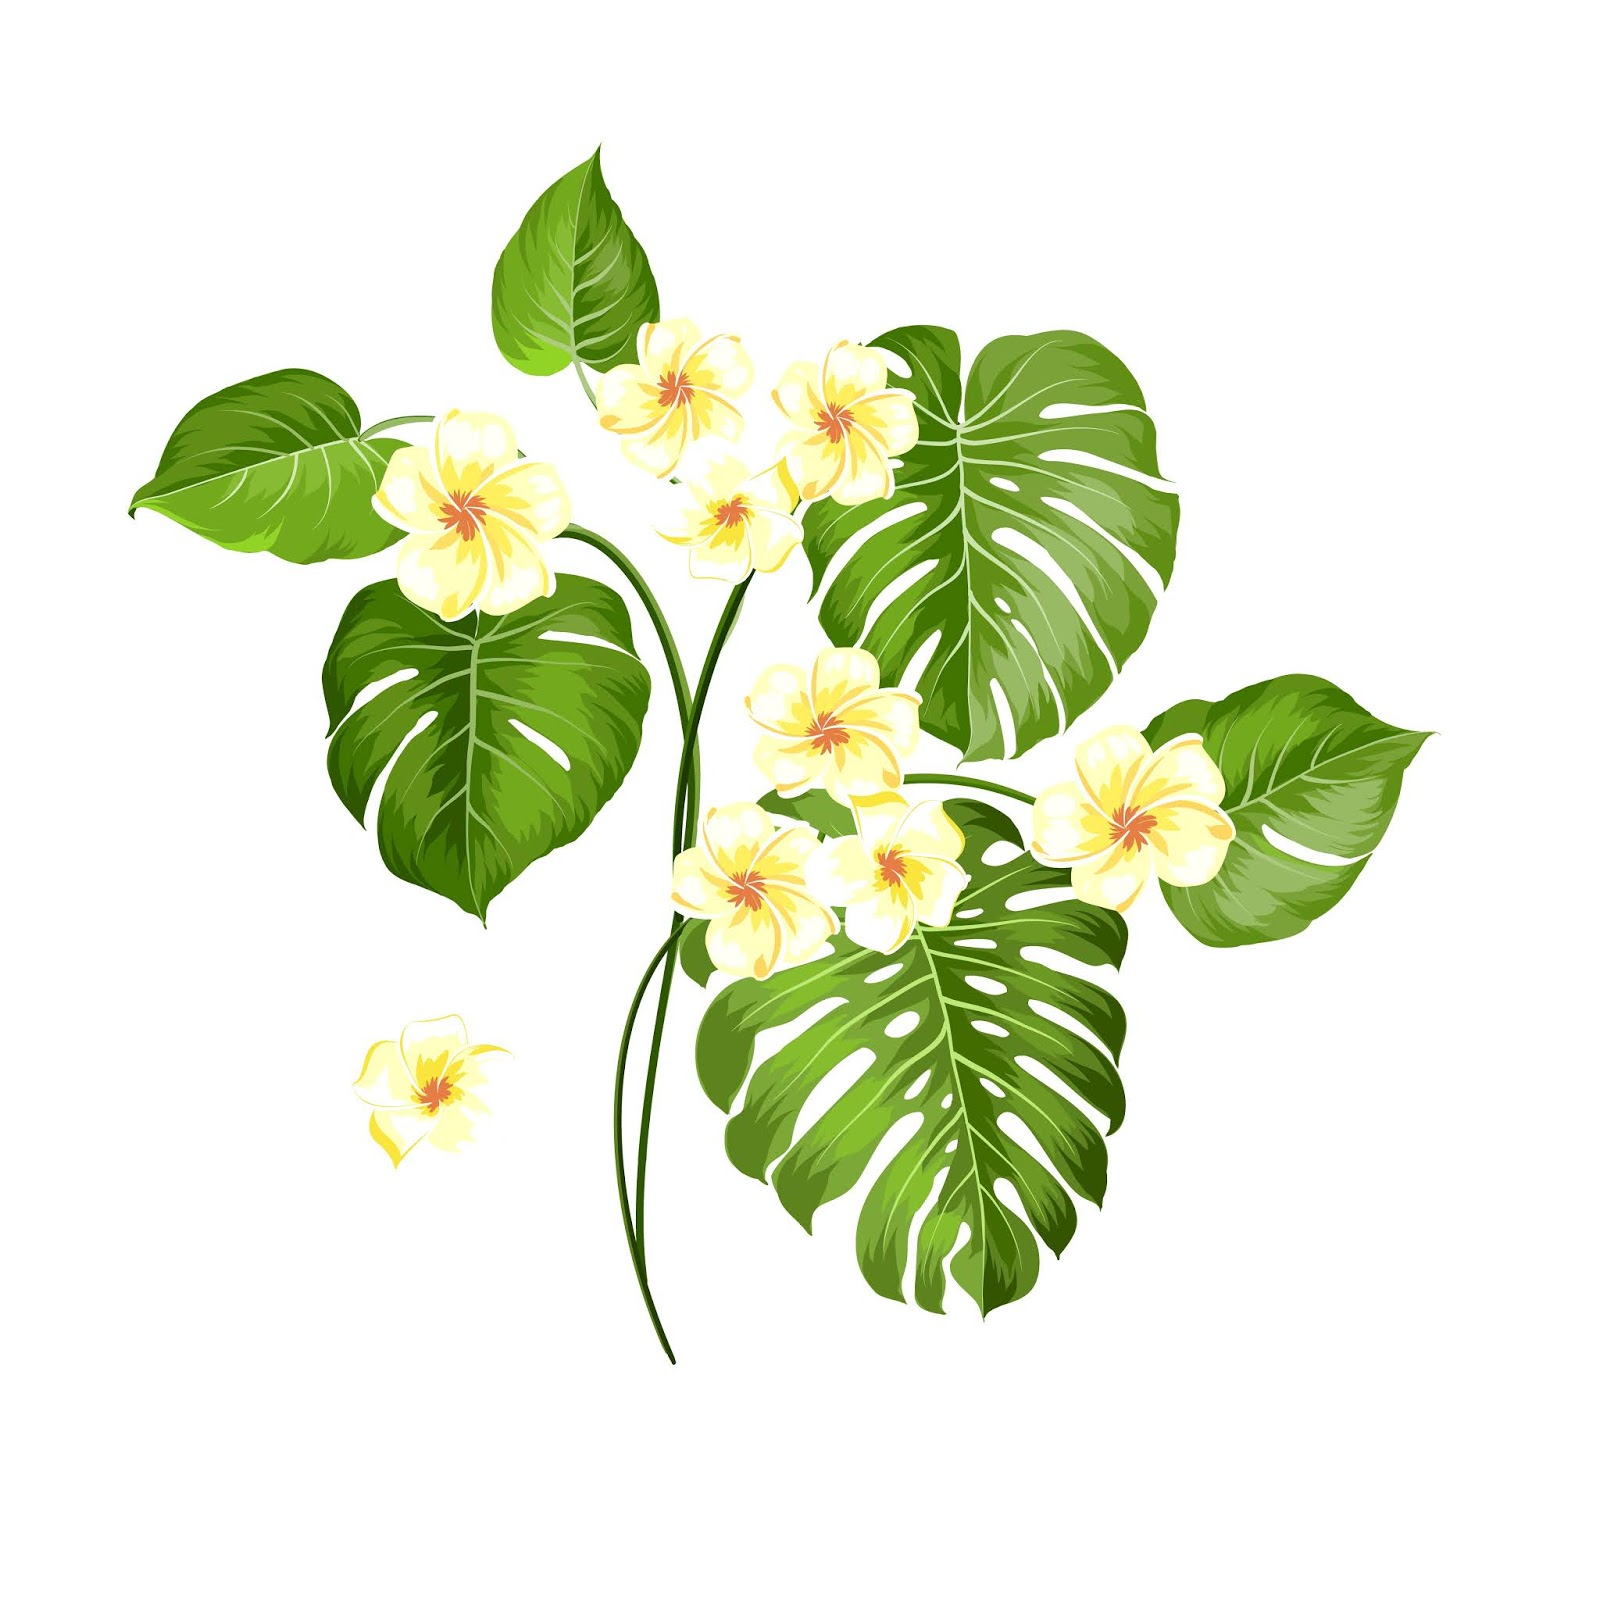 Tropical Flower Palm White Background Vector Illustration Free Download Vector CDR, AI, EPS and PNG Formats